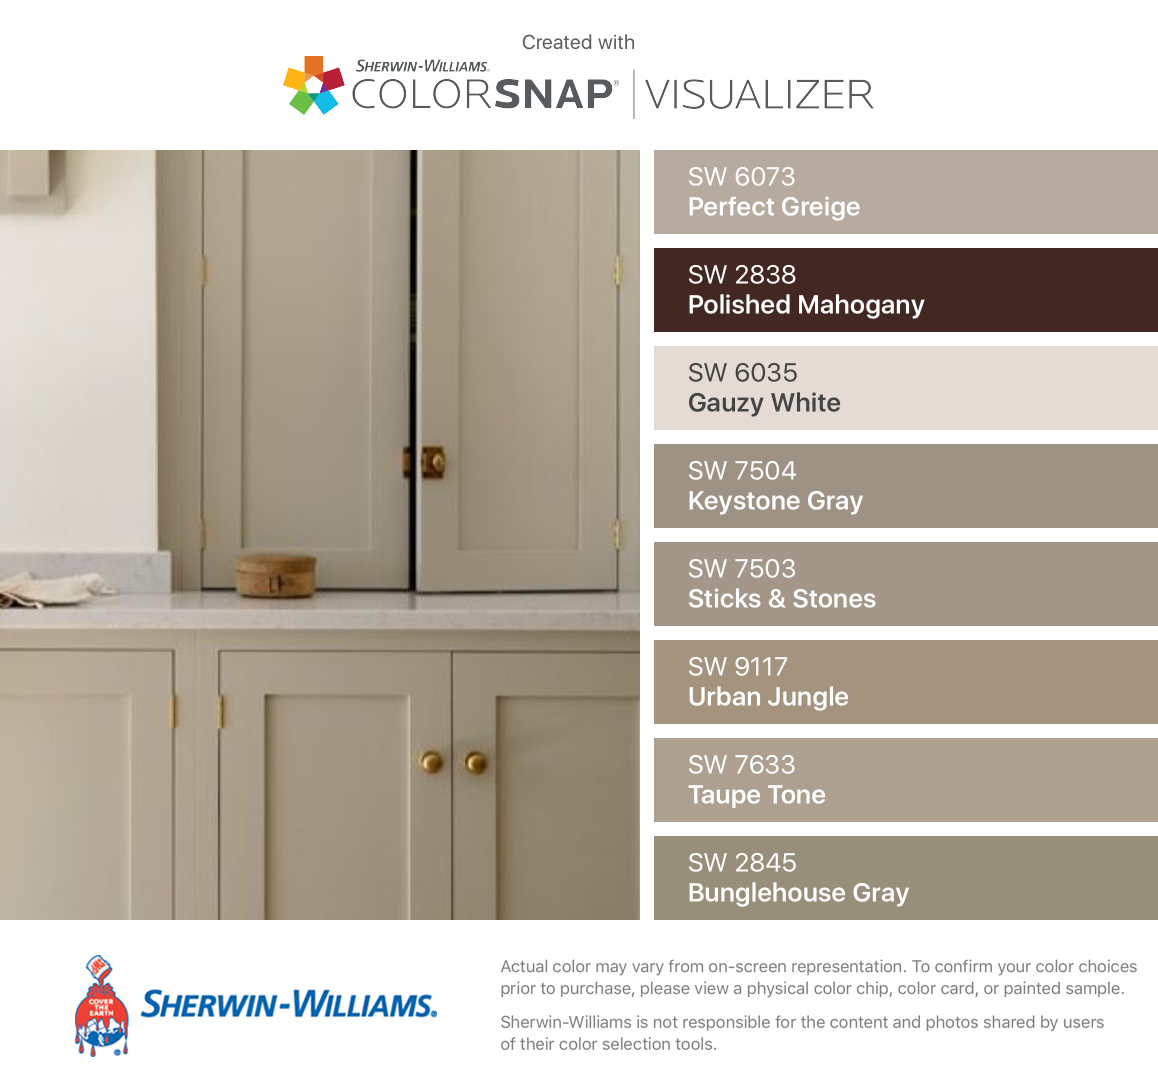 I Found These Colors With Colorsnap Visualizer For Iphone By Sherwin Williams Perfect Greige Sw 6073 Greige Kitchen Brown Kitchens Kitchen Cabinet Colors